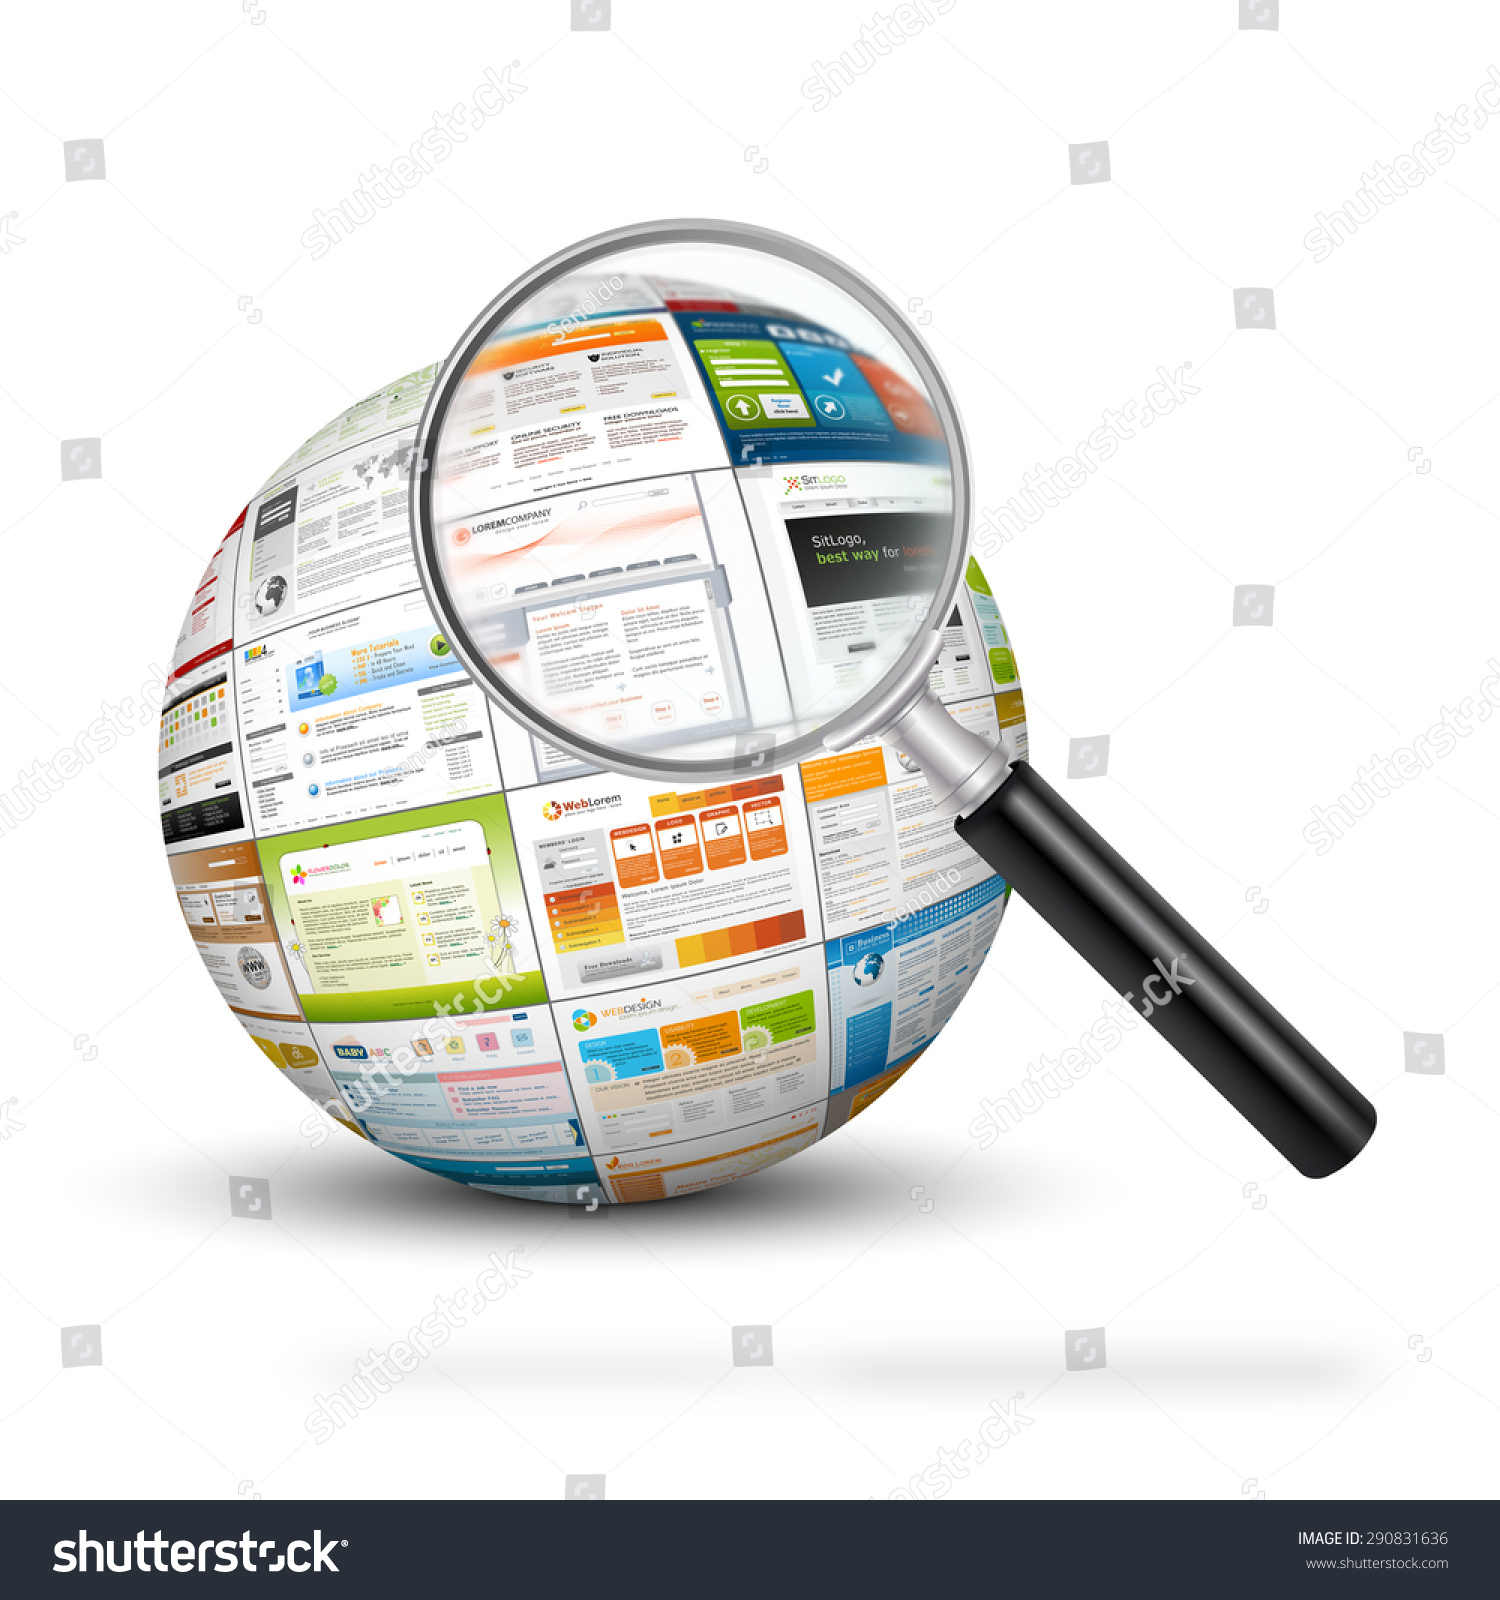 Sphere web design template imprints magnifying stock for Sphere net template